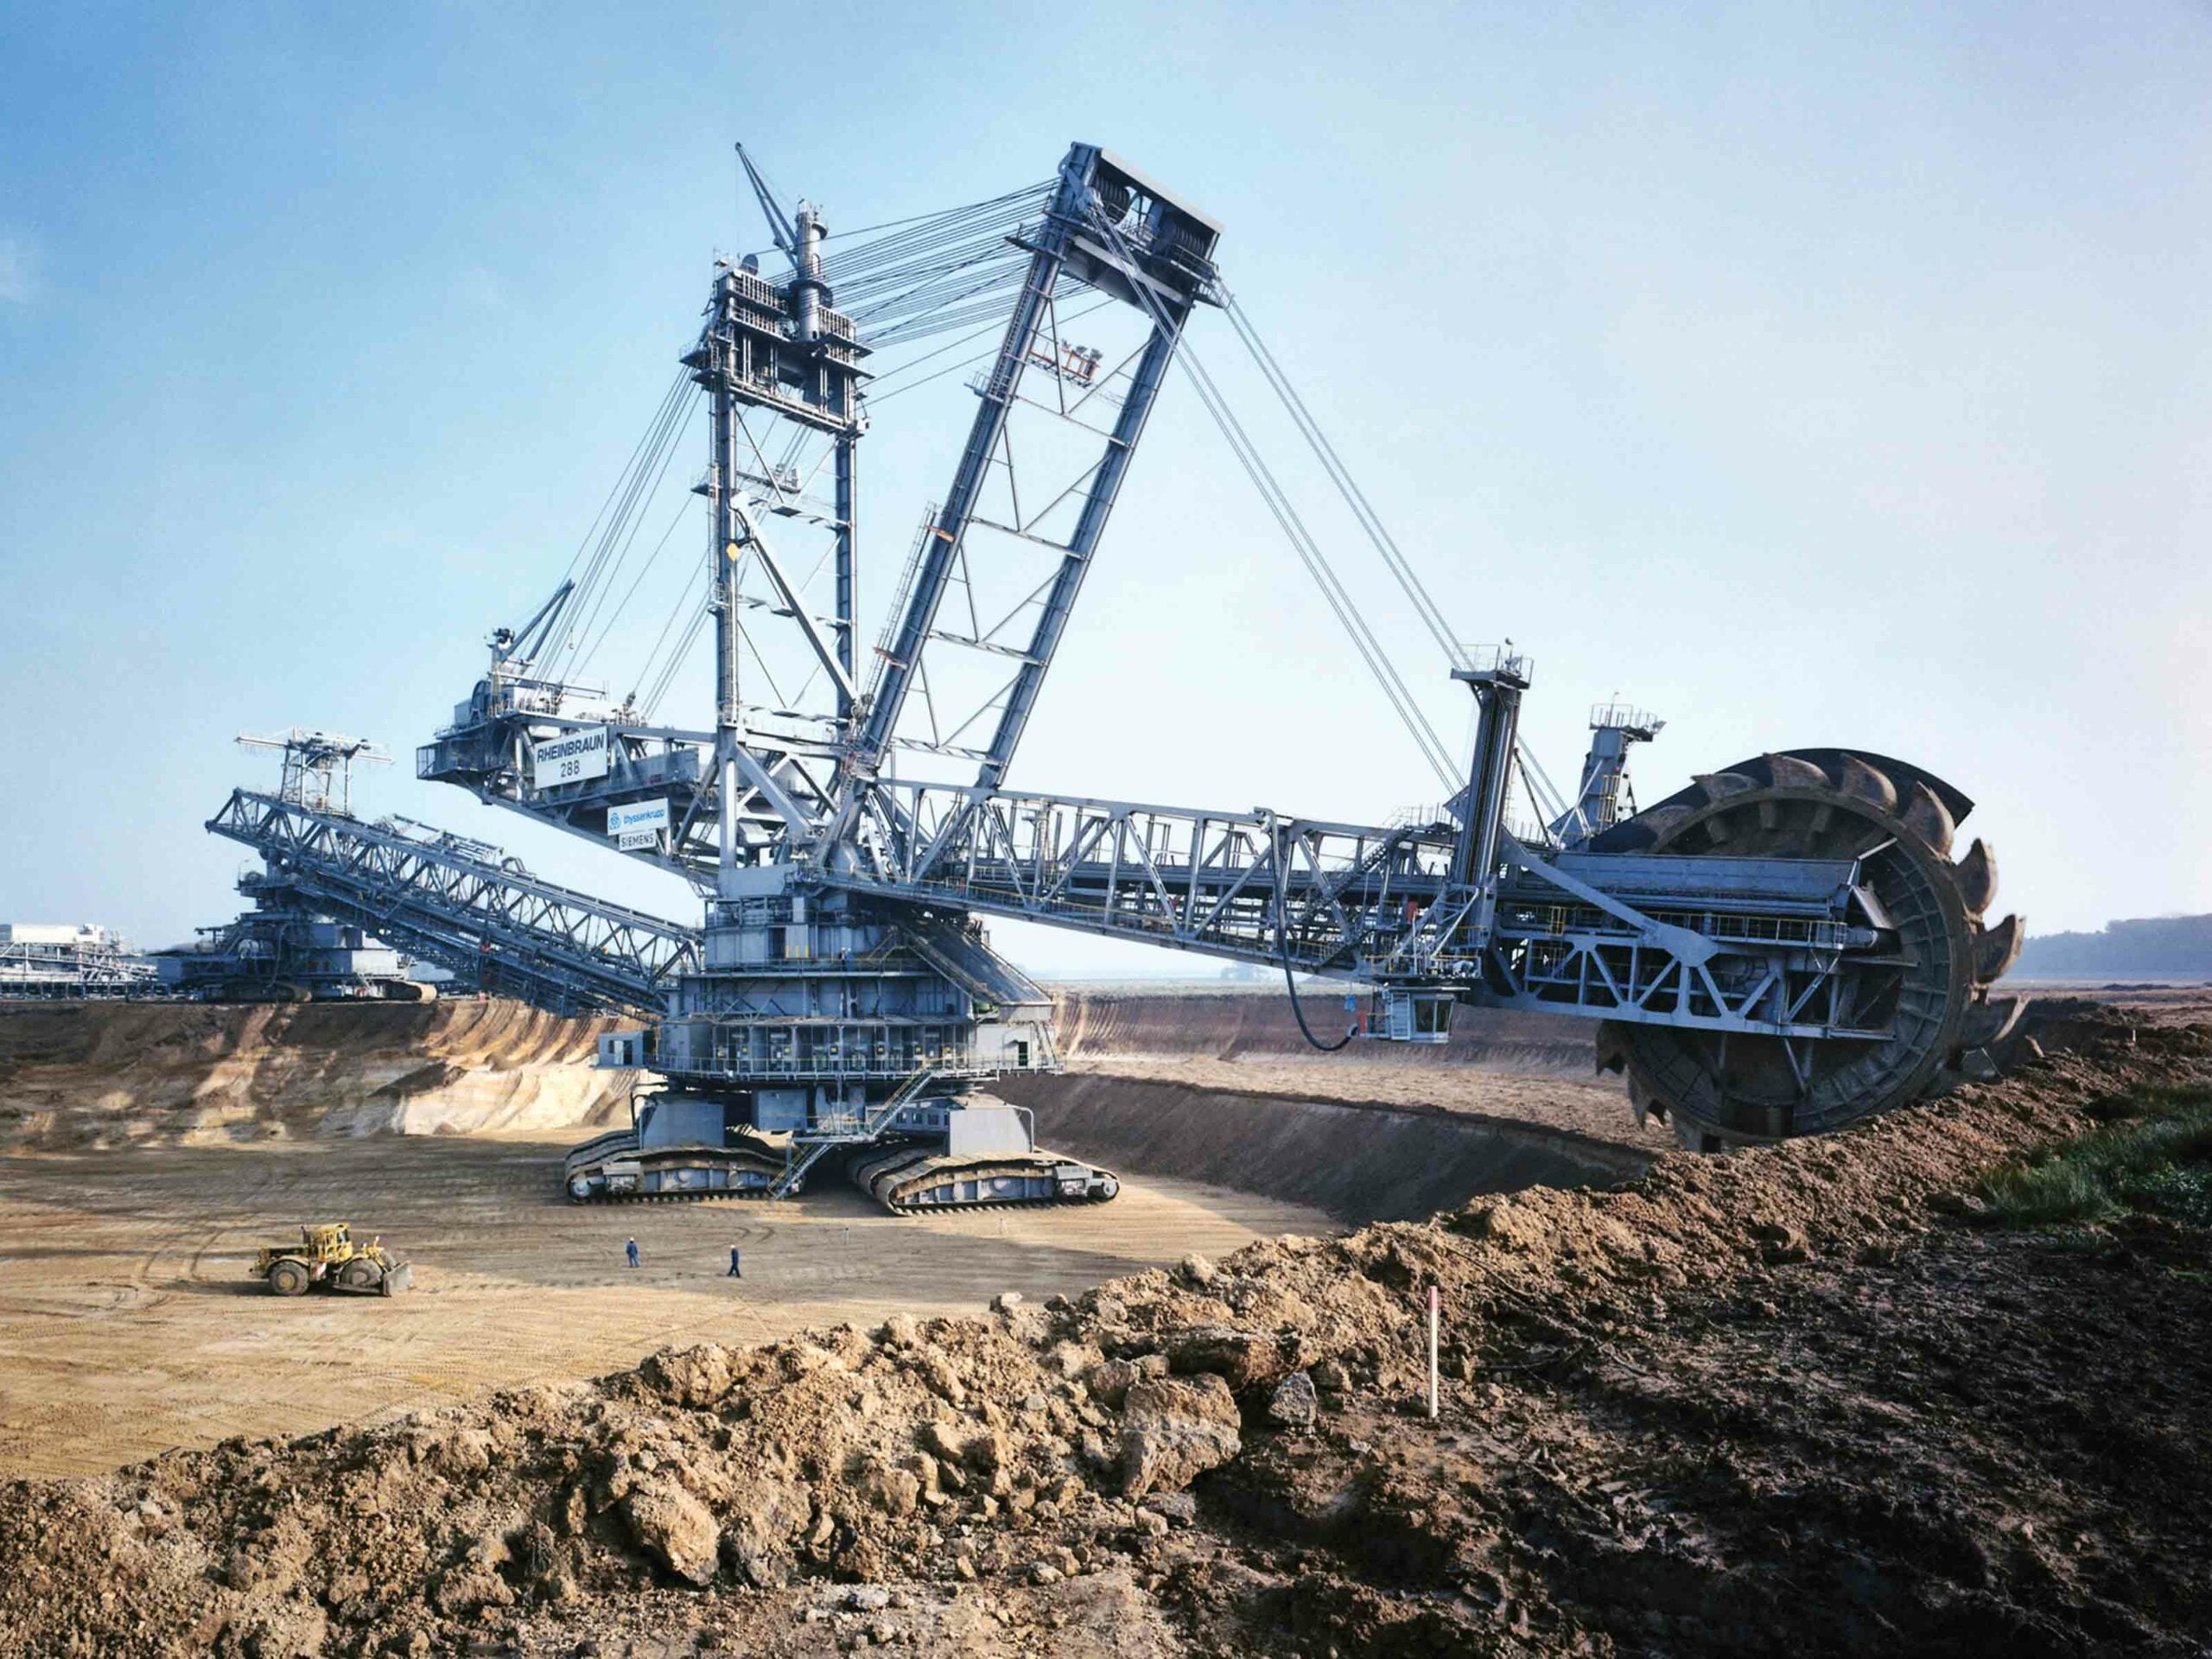 This excavator is one of the largest land vehicles on Earth